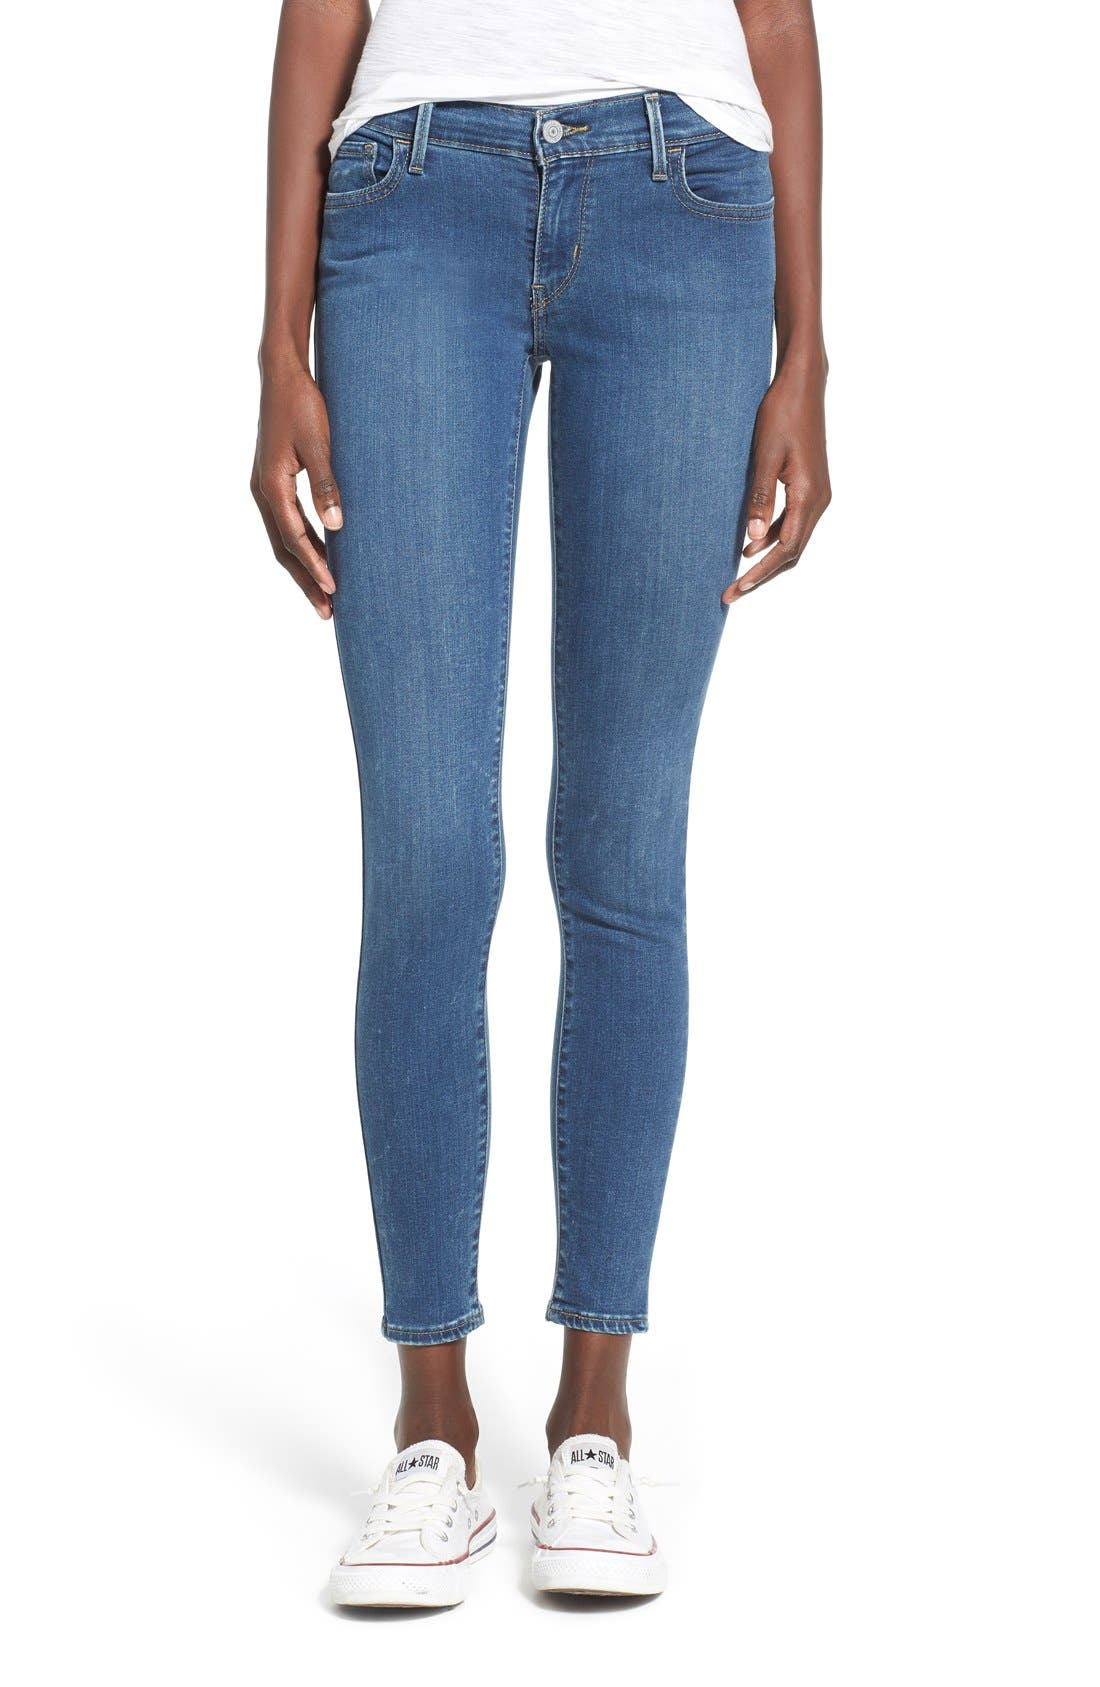 Alternate Image 1 Selected - Levi's® '710' Super Skinny Jeans (Pacific Drive)